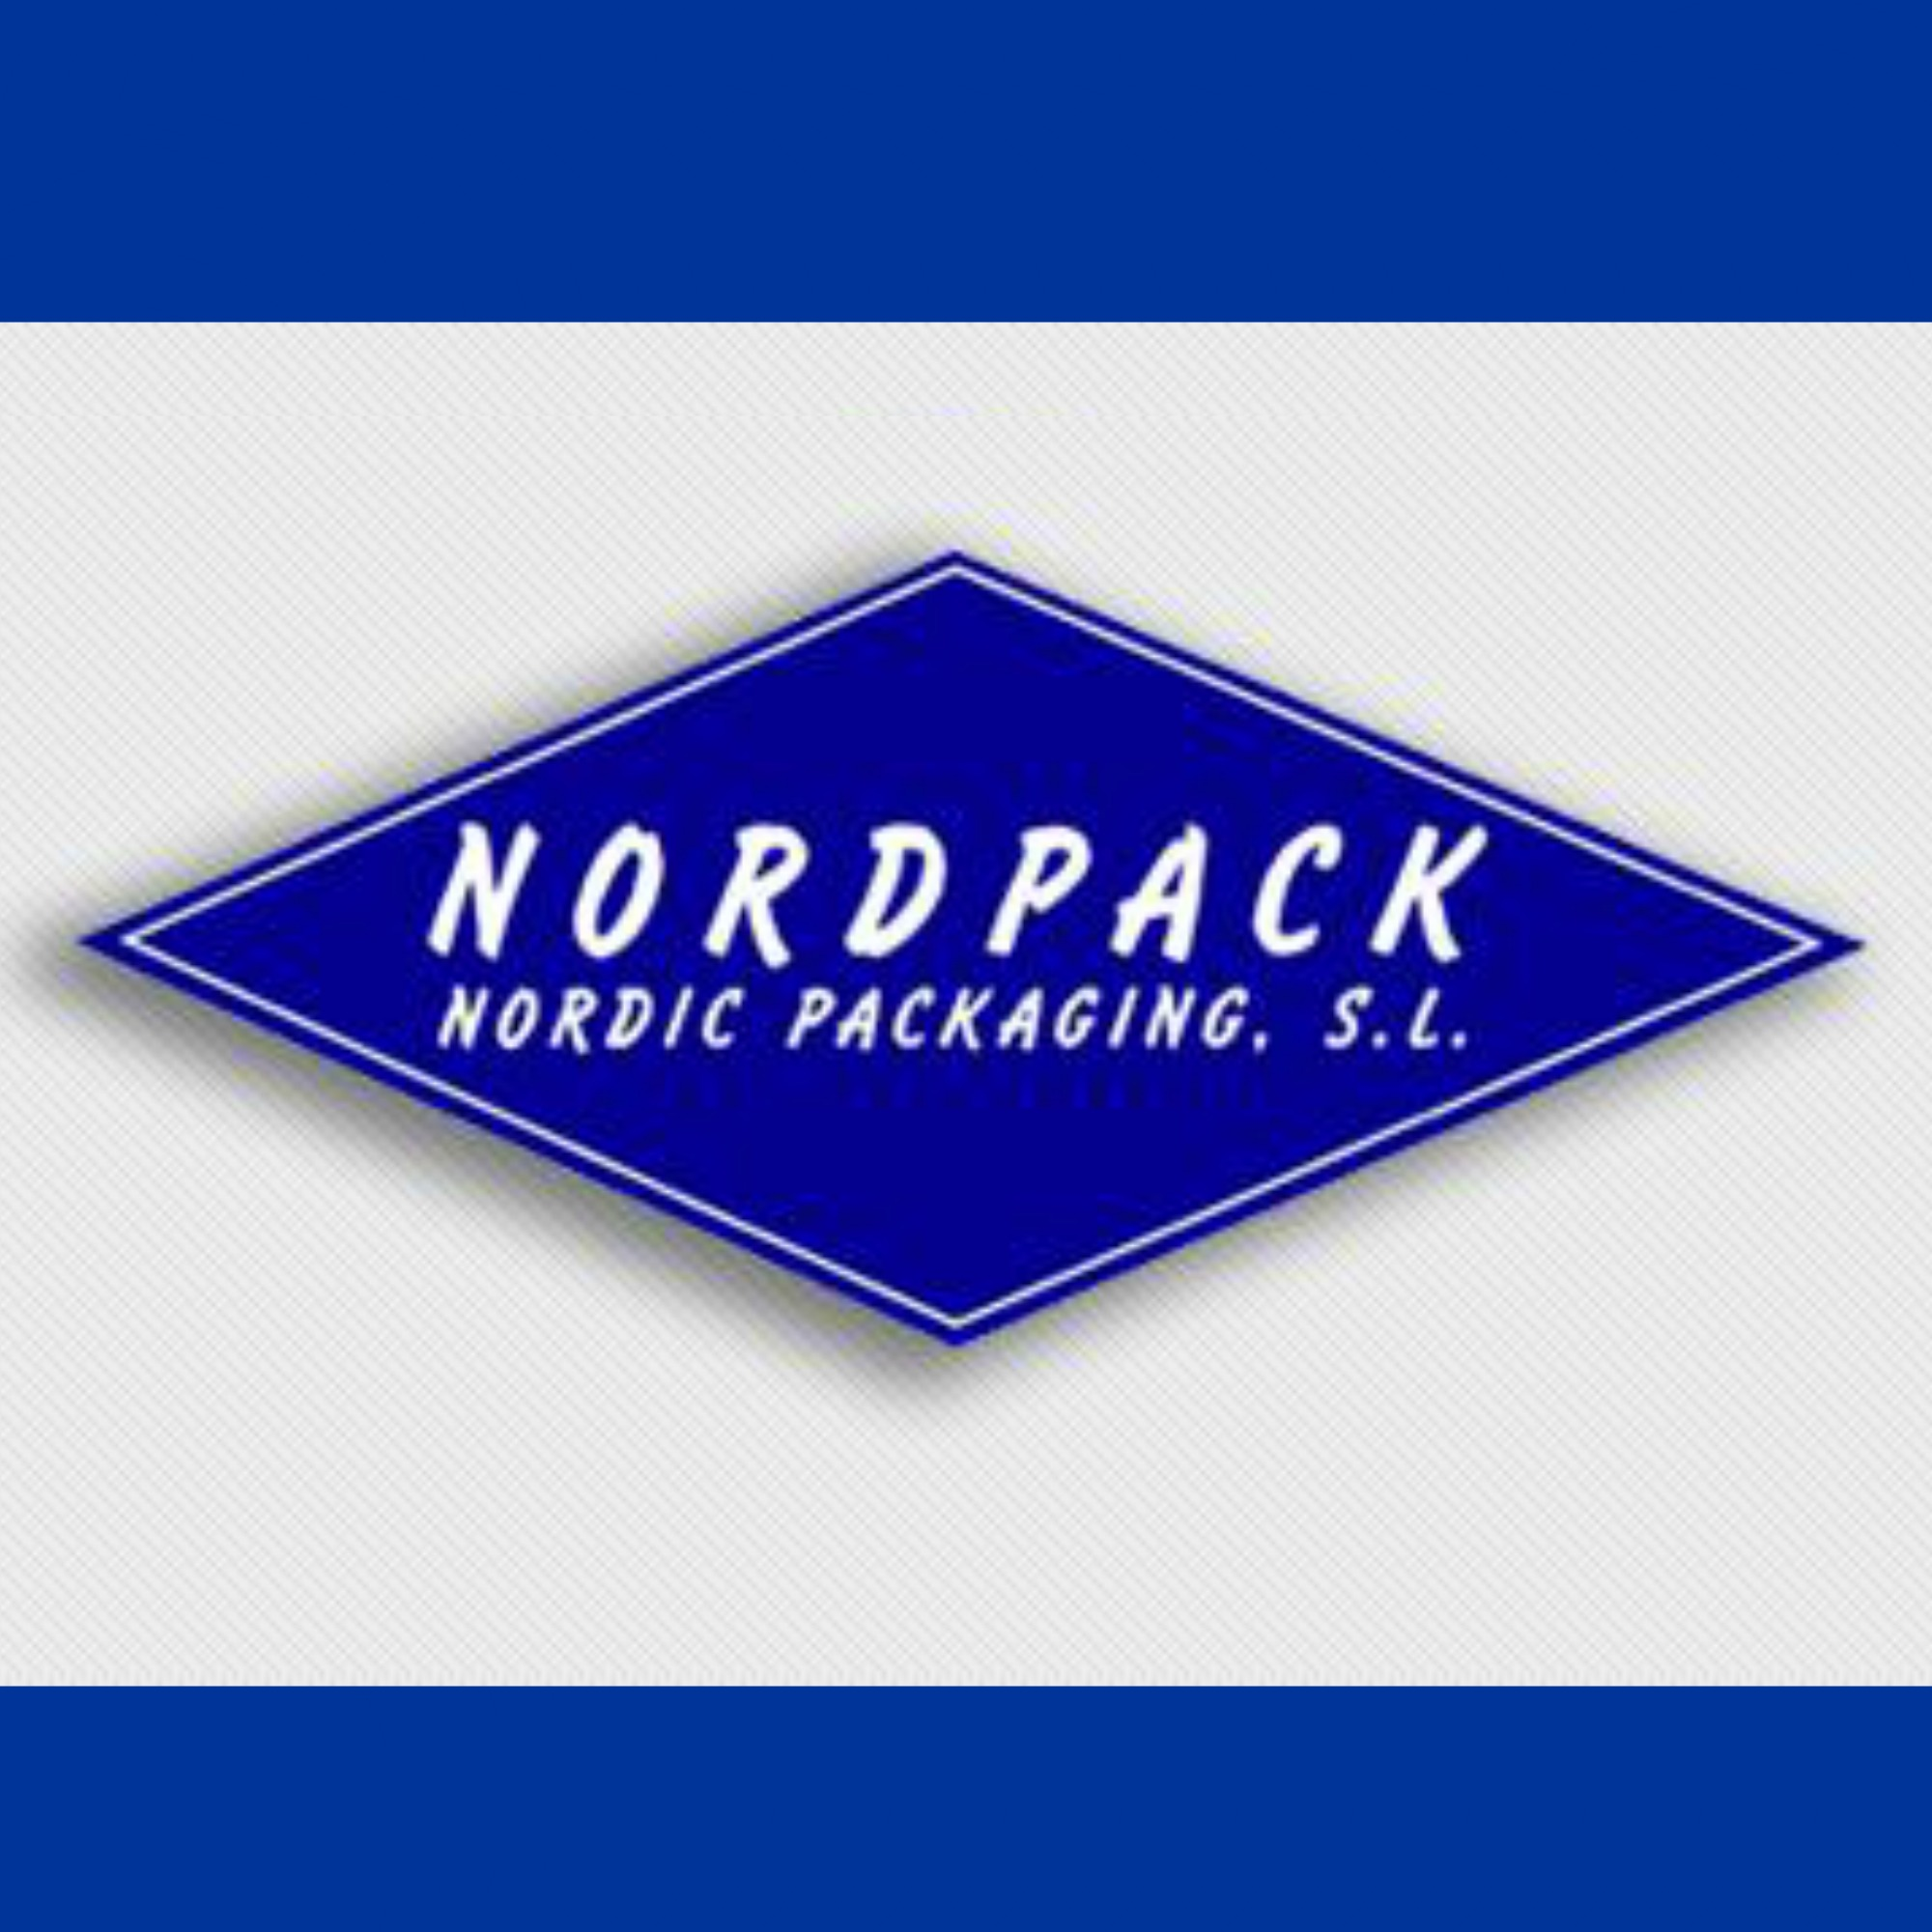 Nordic Packaging-Nordpack SL